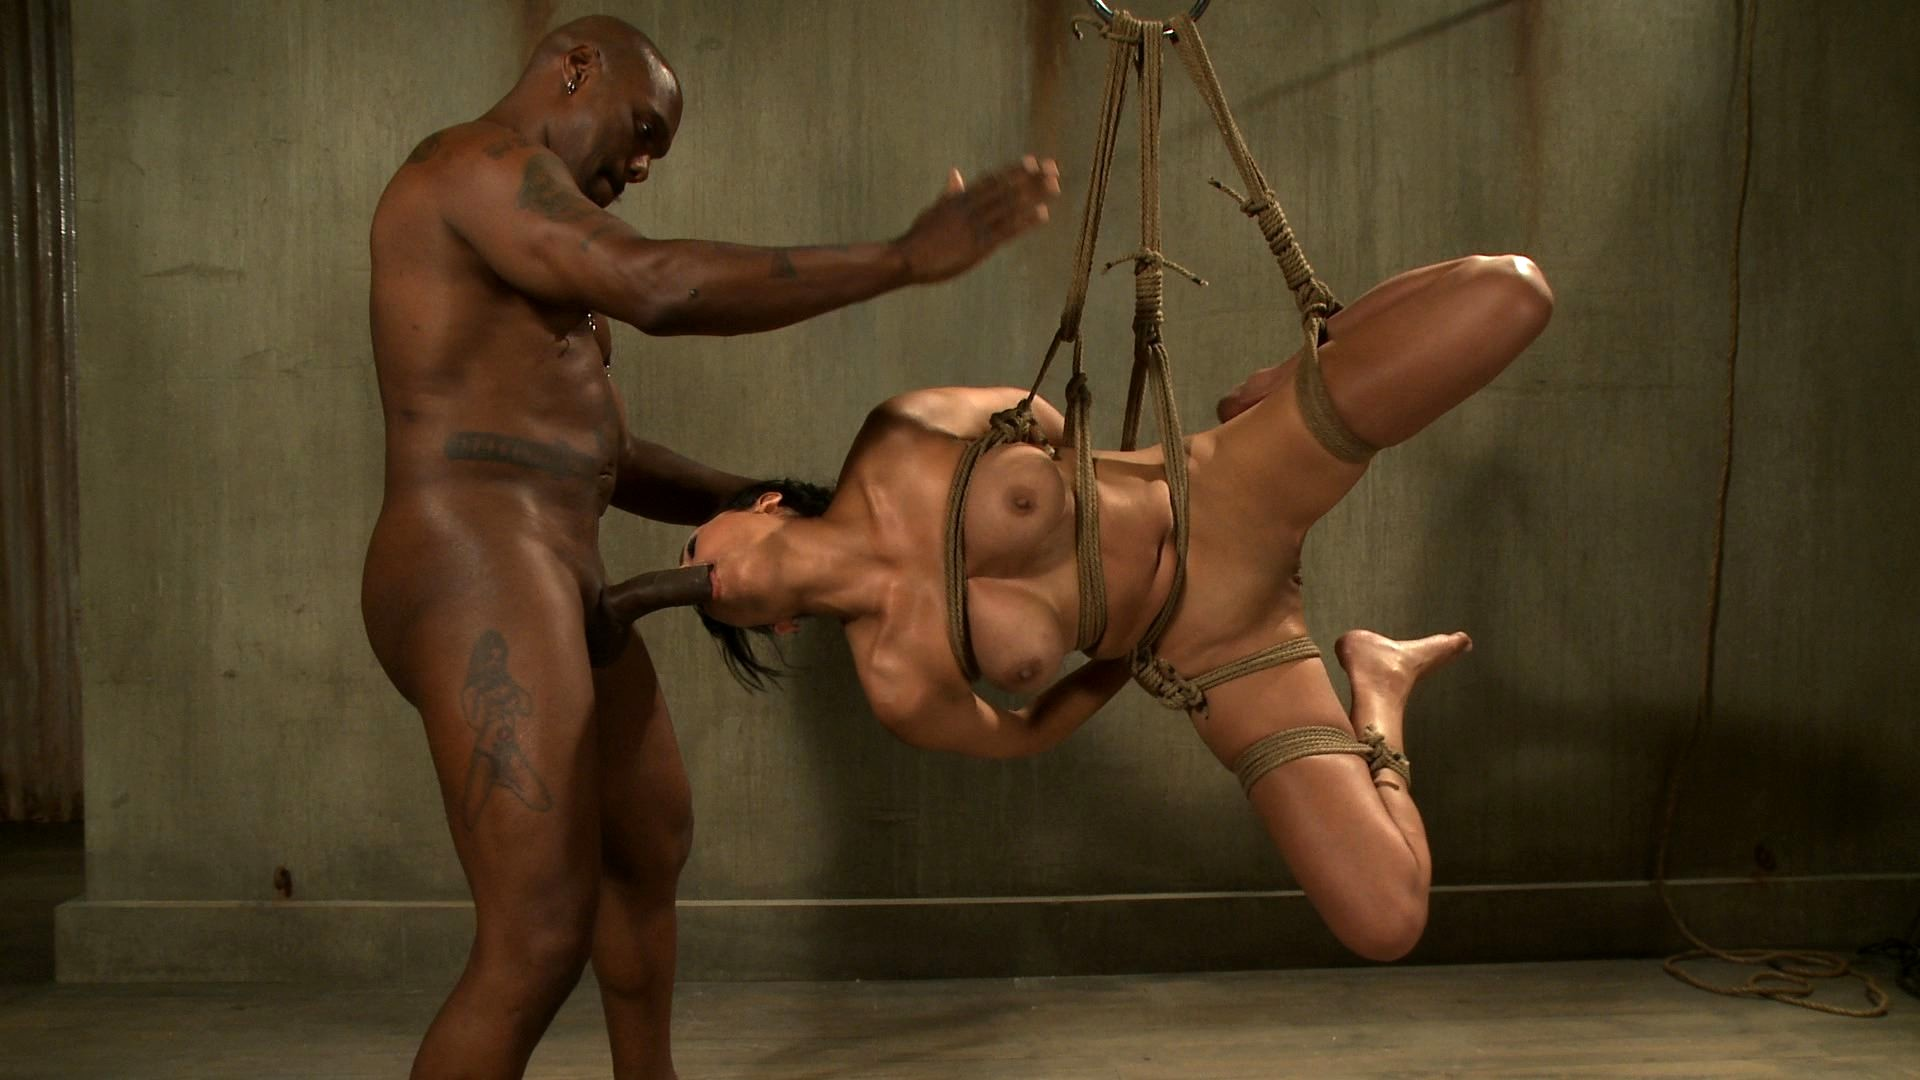 Fucked and bound review